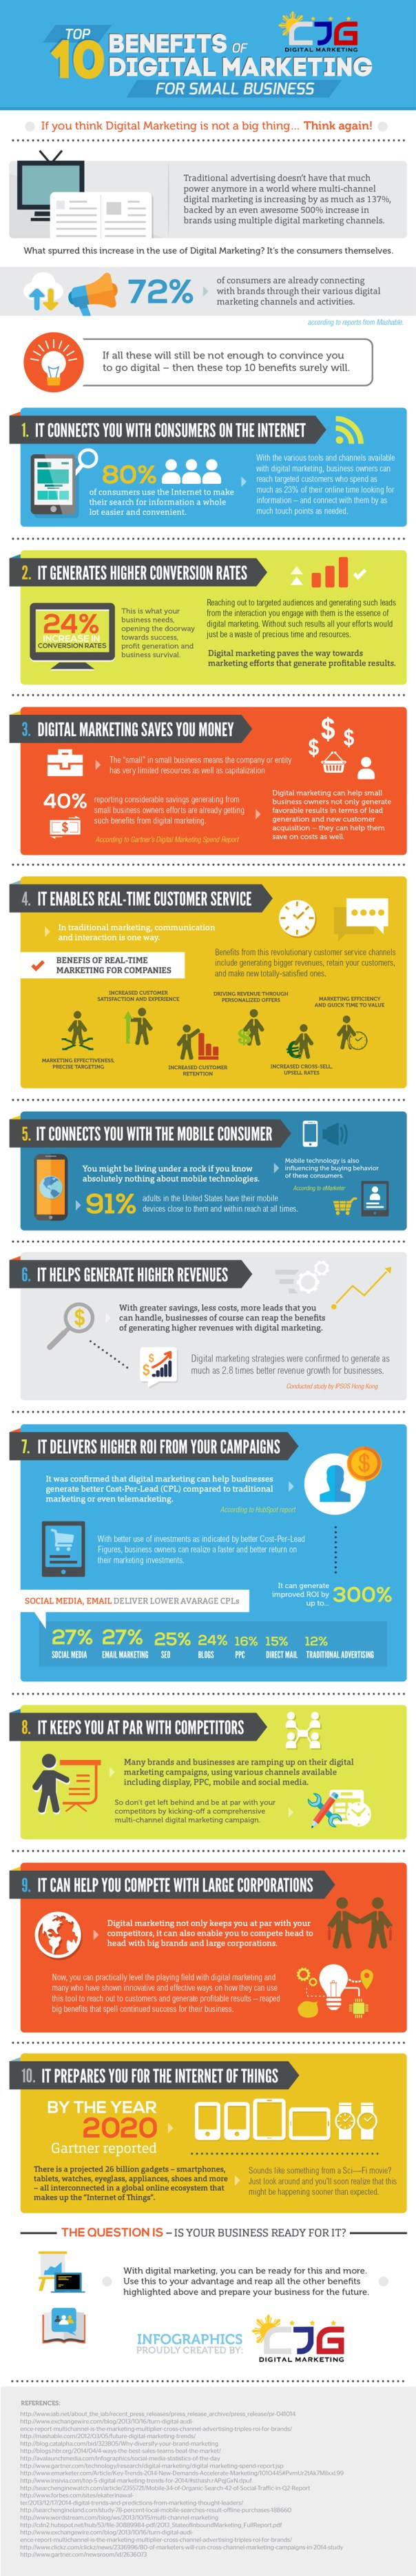 Top_10_Benefits_of_Digital_Marketing_for_Small_Business